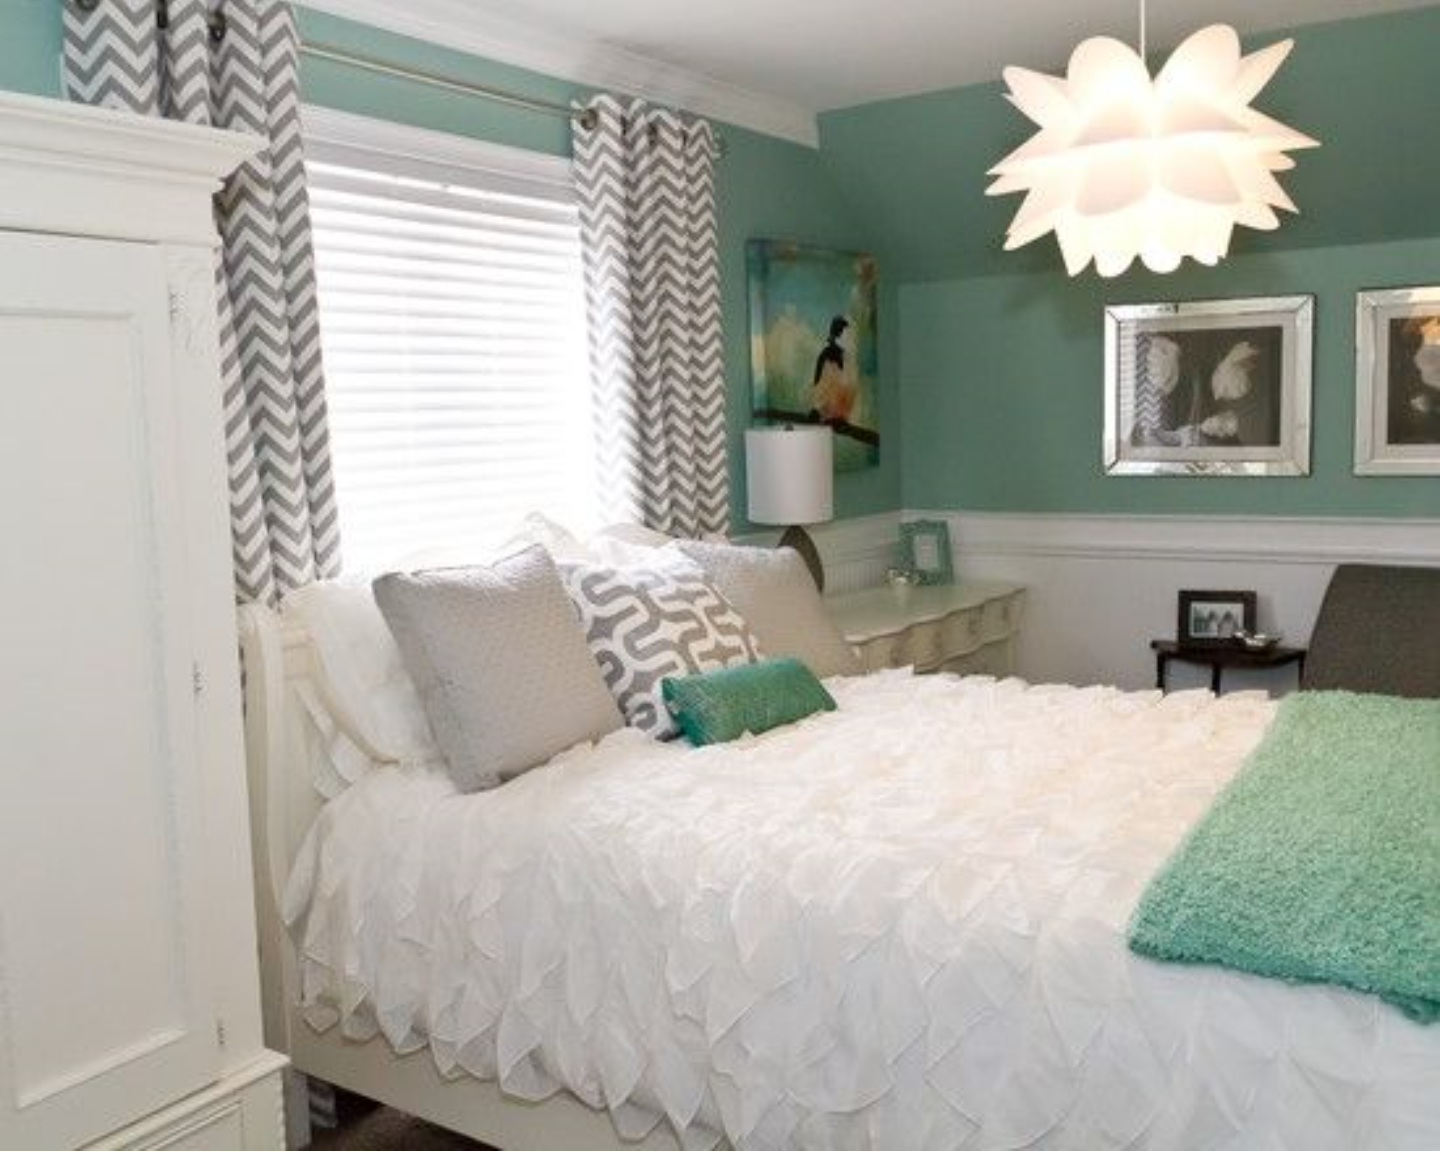 Green bedroom design for girls - Grey And Mint Green Bedroom